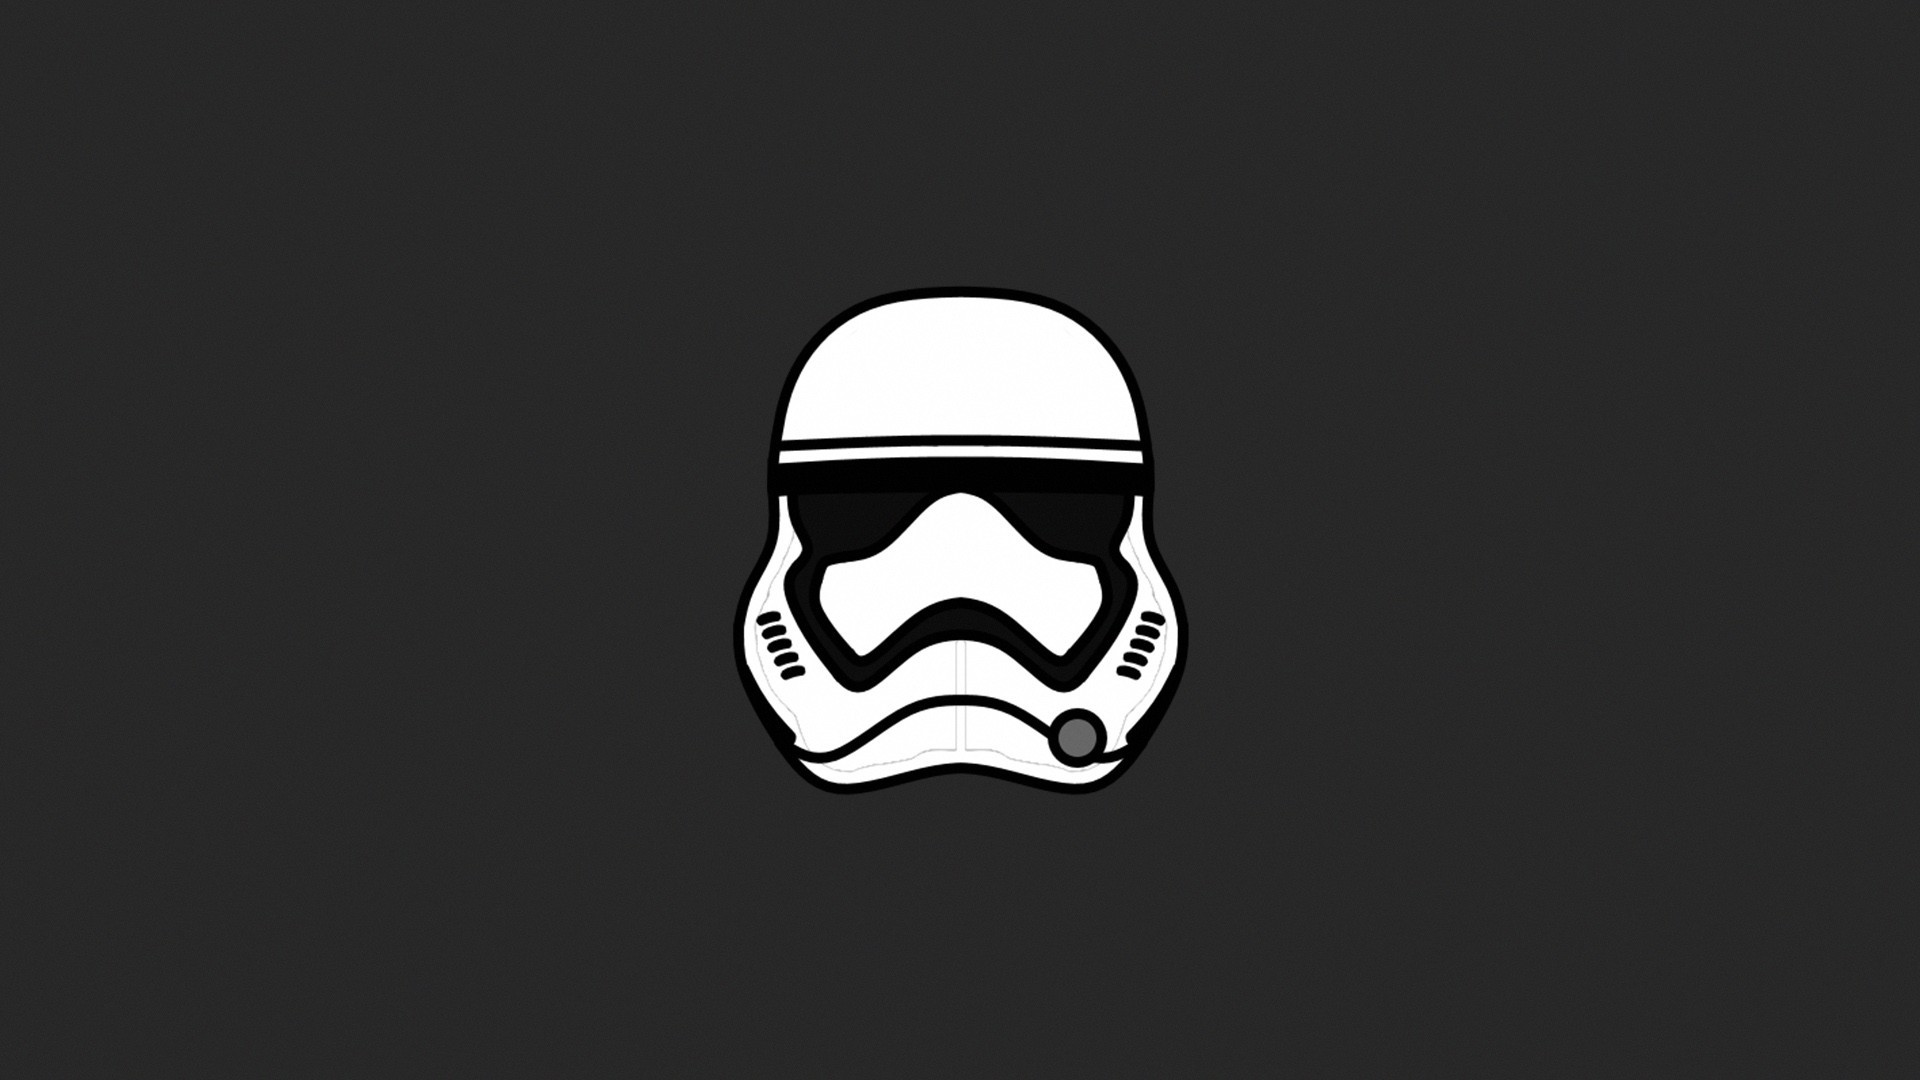 Download Stormtrooper Wallpaper 1920x1080 Hd Backgrounds Download Itl Cat